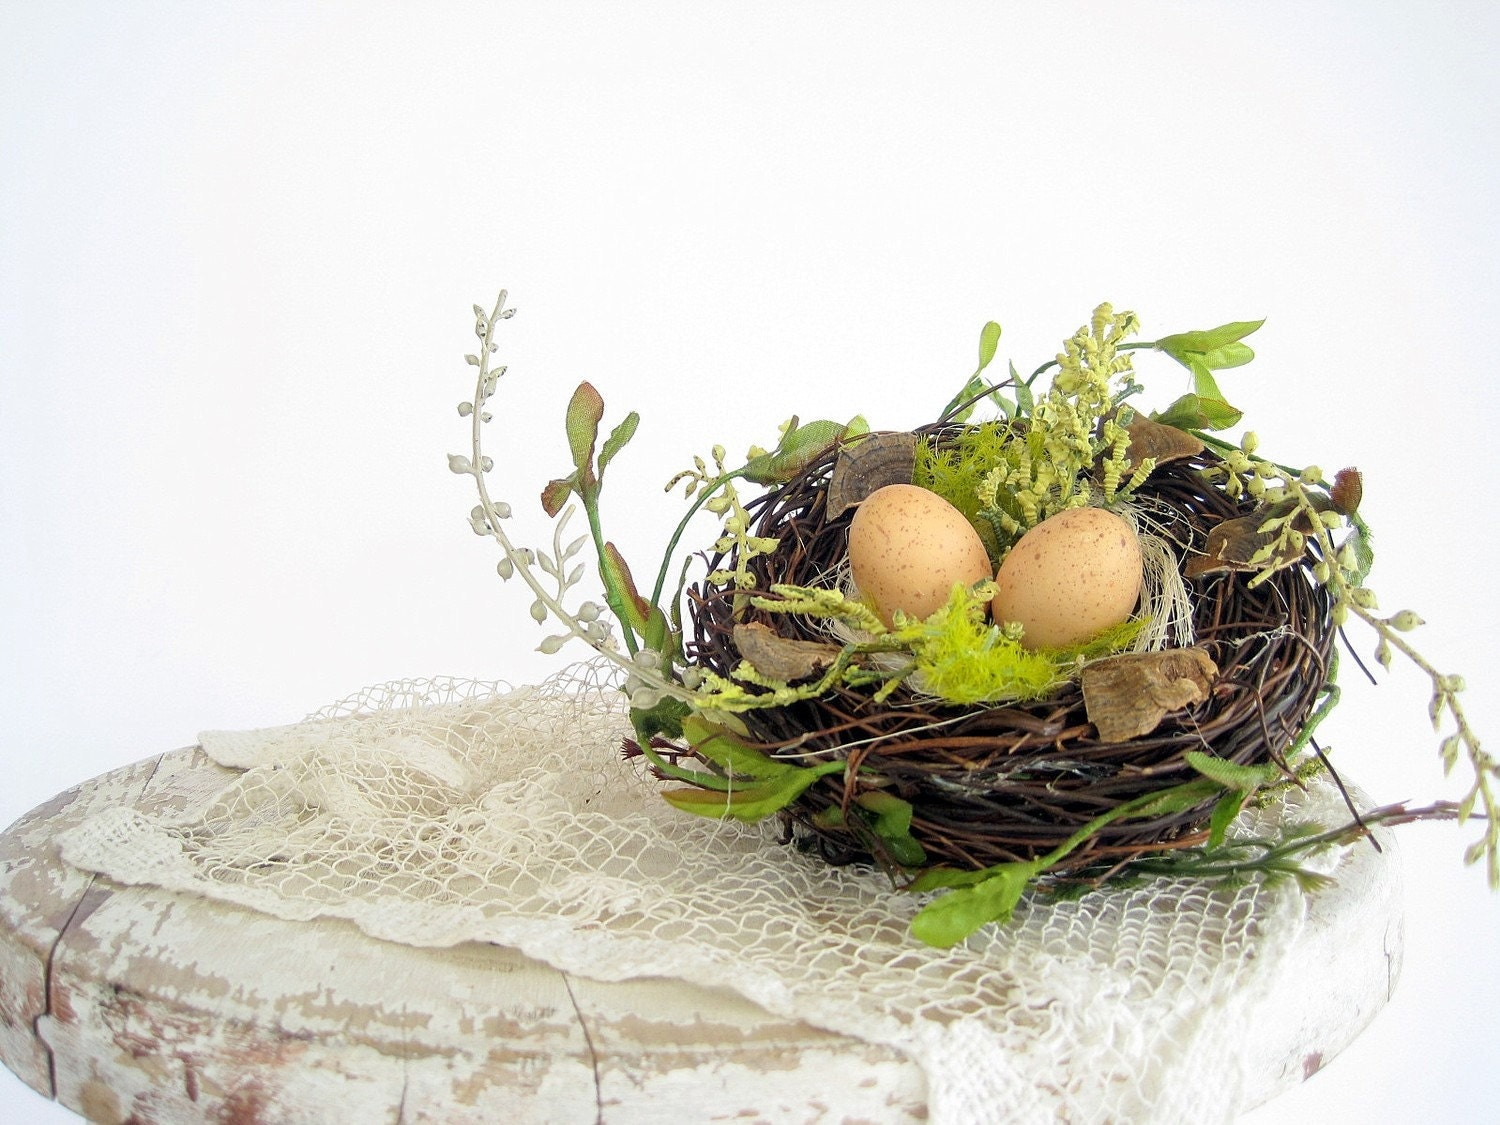 Custom For Angie Decorative Bird Nest Wedding Nest With Eggs